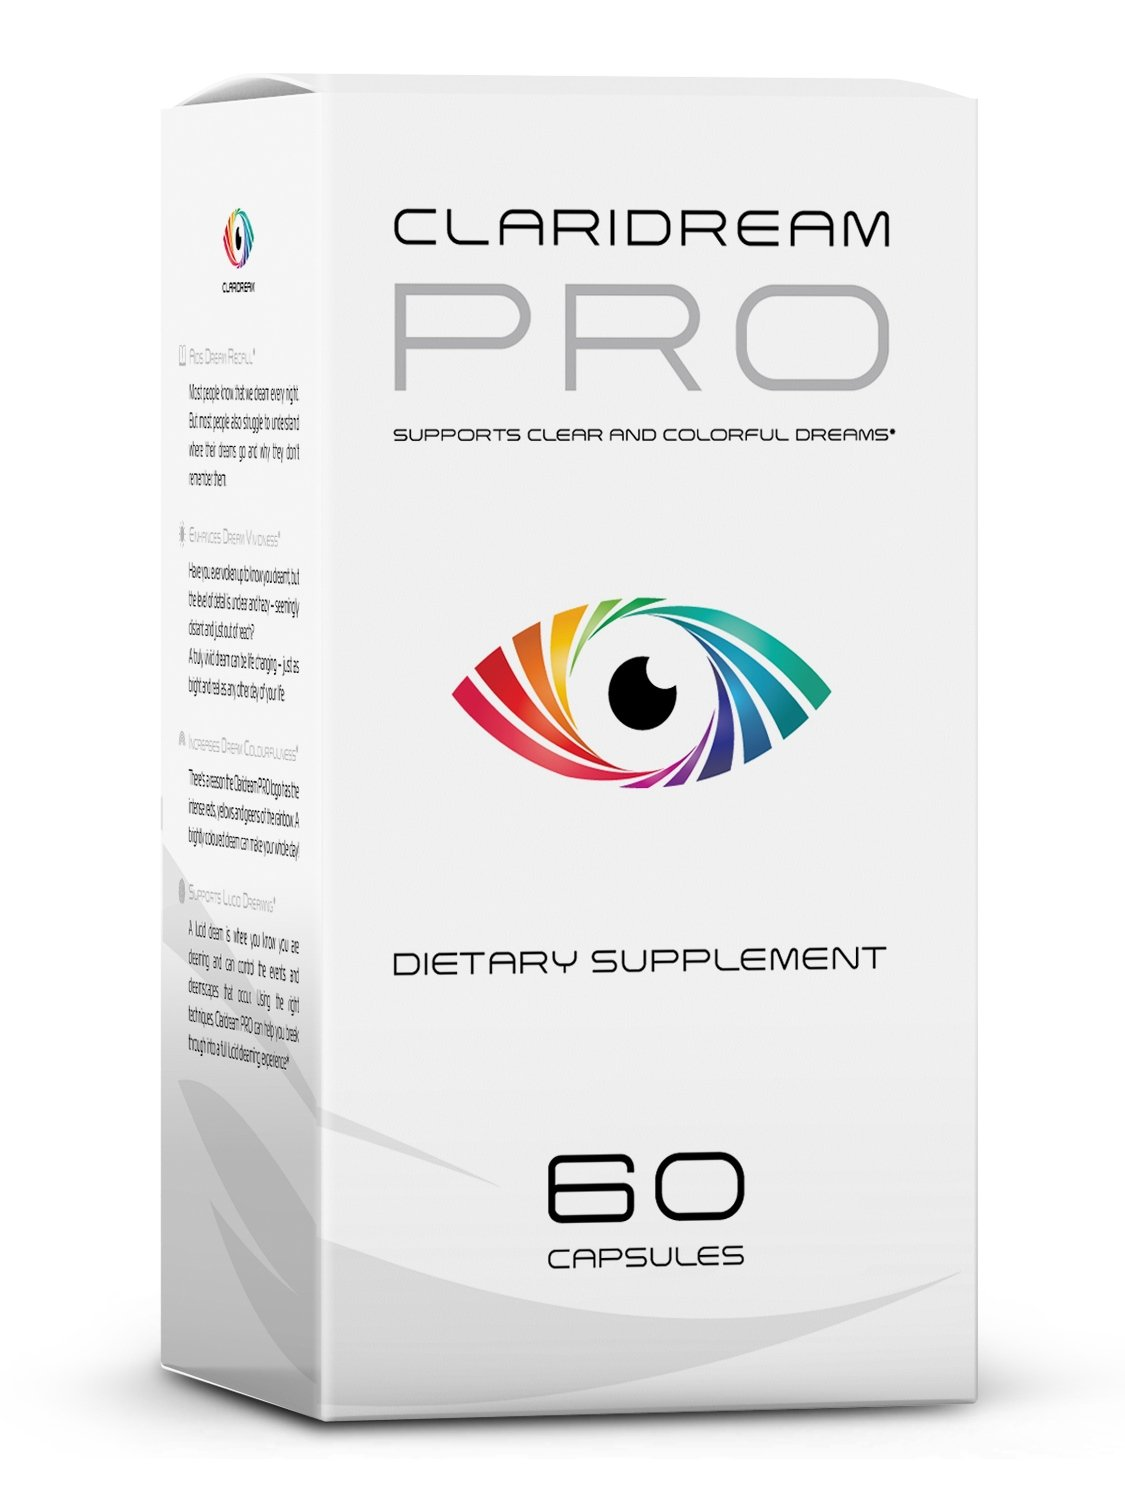 Claridream PRO Lucid Dreaming Pills for Clear, Colorful and Vivid Dreams. 60 Capsules.